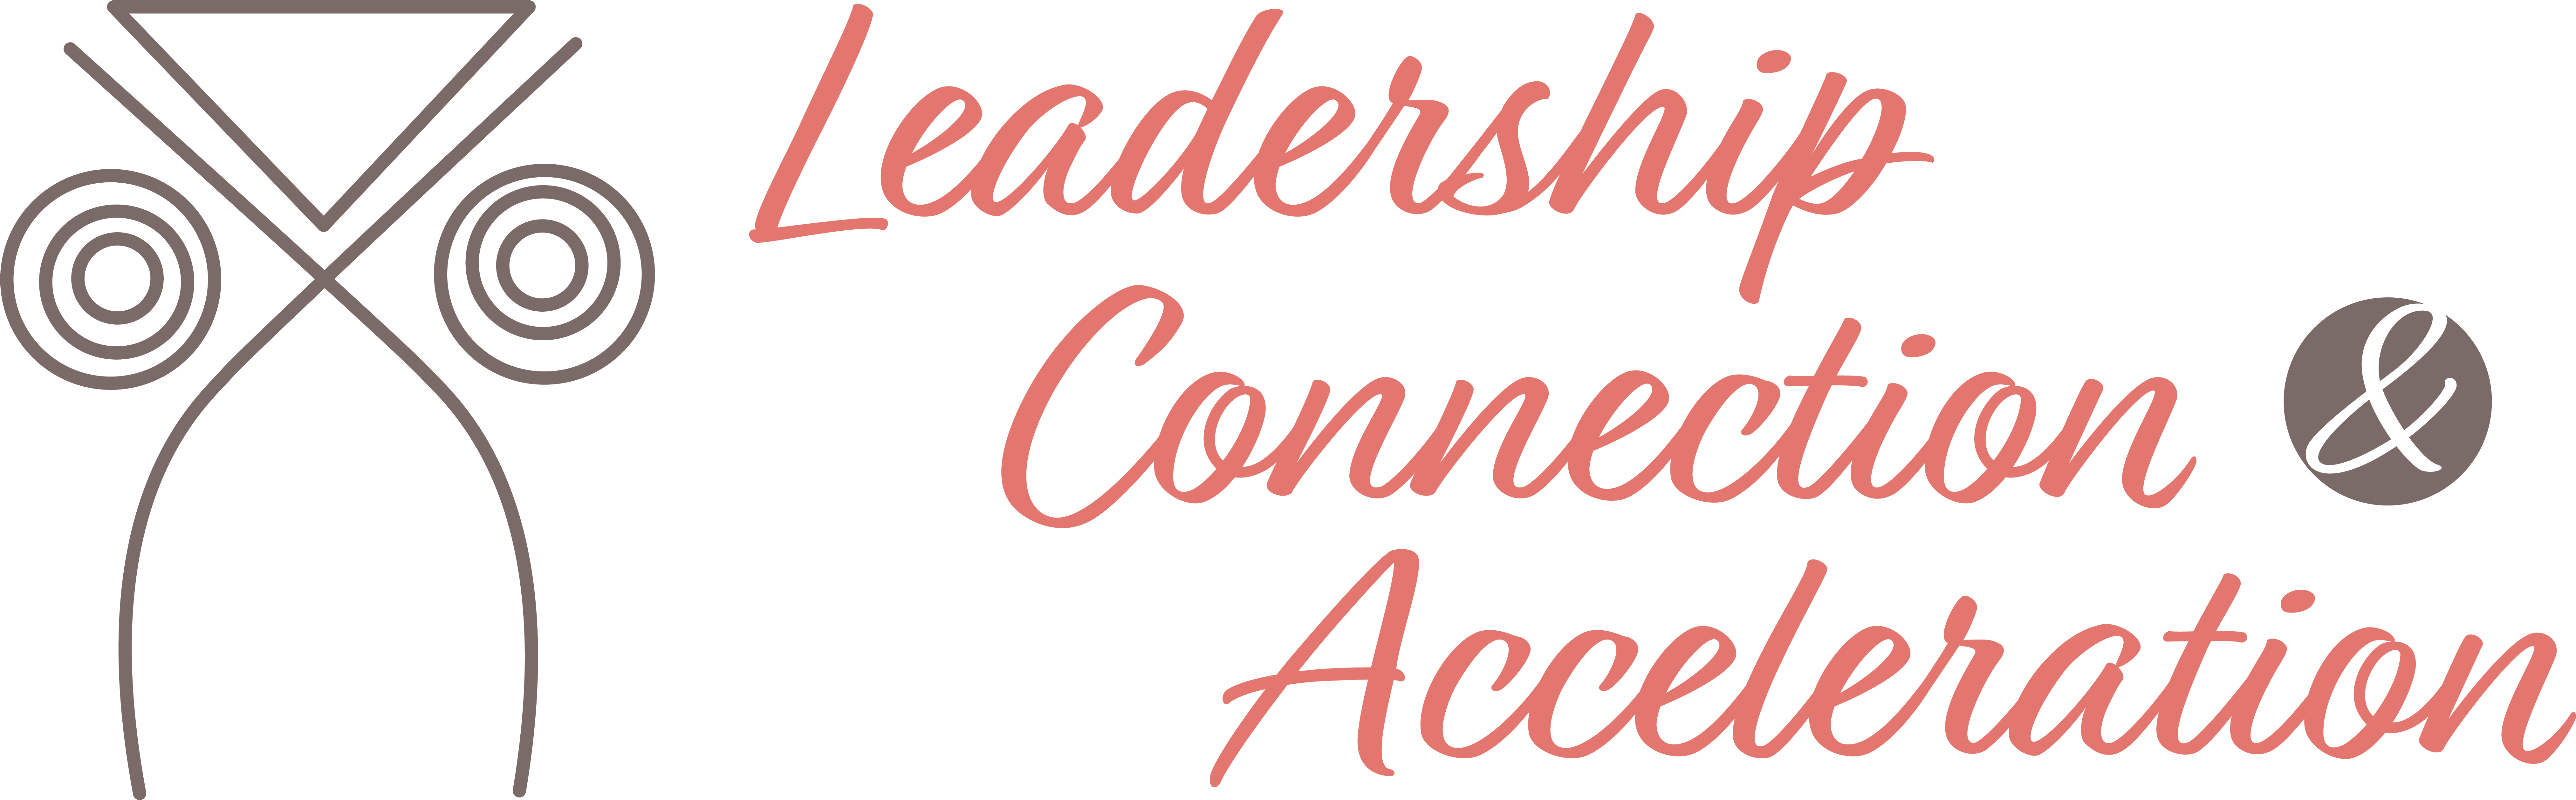 Leadership Connection Acceleration